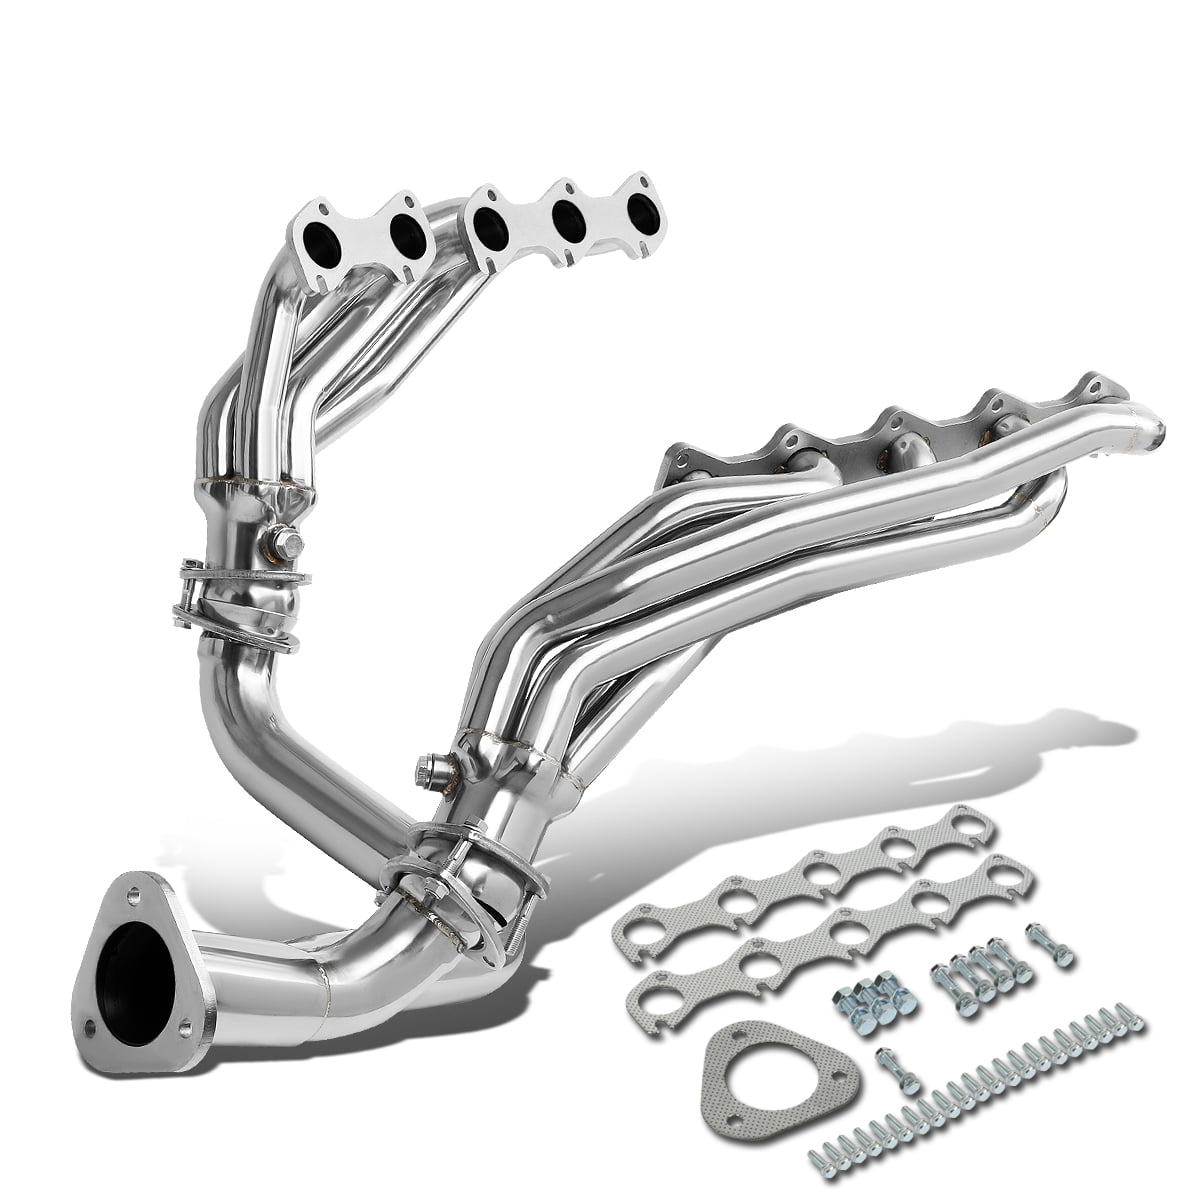 For 1999 To 2004 Ford F250 F350 Super Duty 6 8l V10 Stainless Steel Mid Length Exhaust Header Manifold W Y Pipe Walmart Com Walmart Com